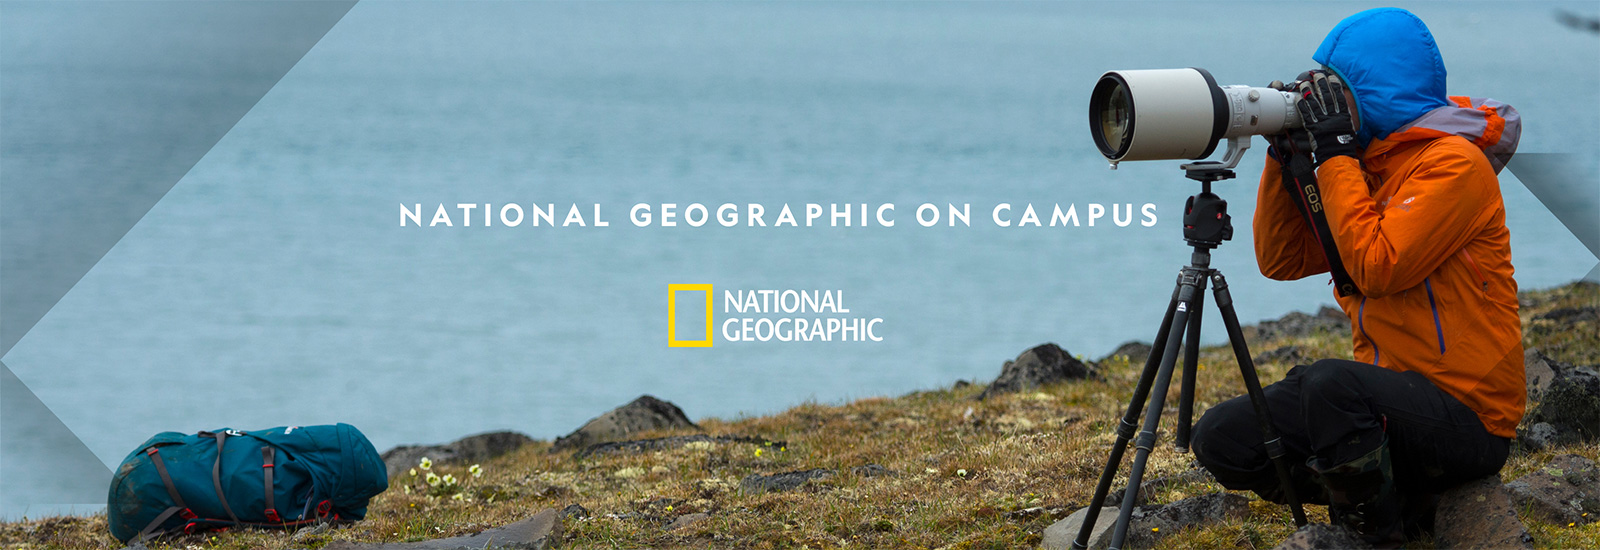 National Geographic on Campus